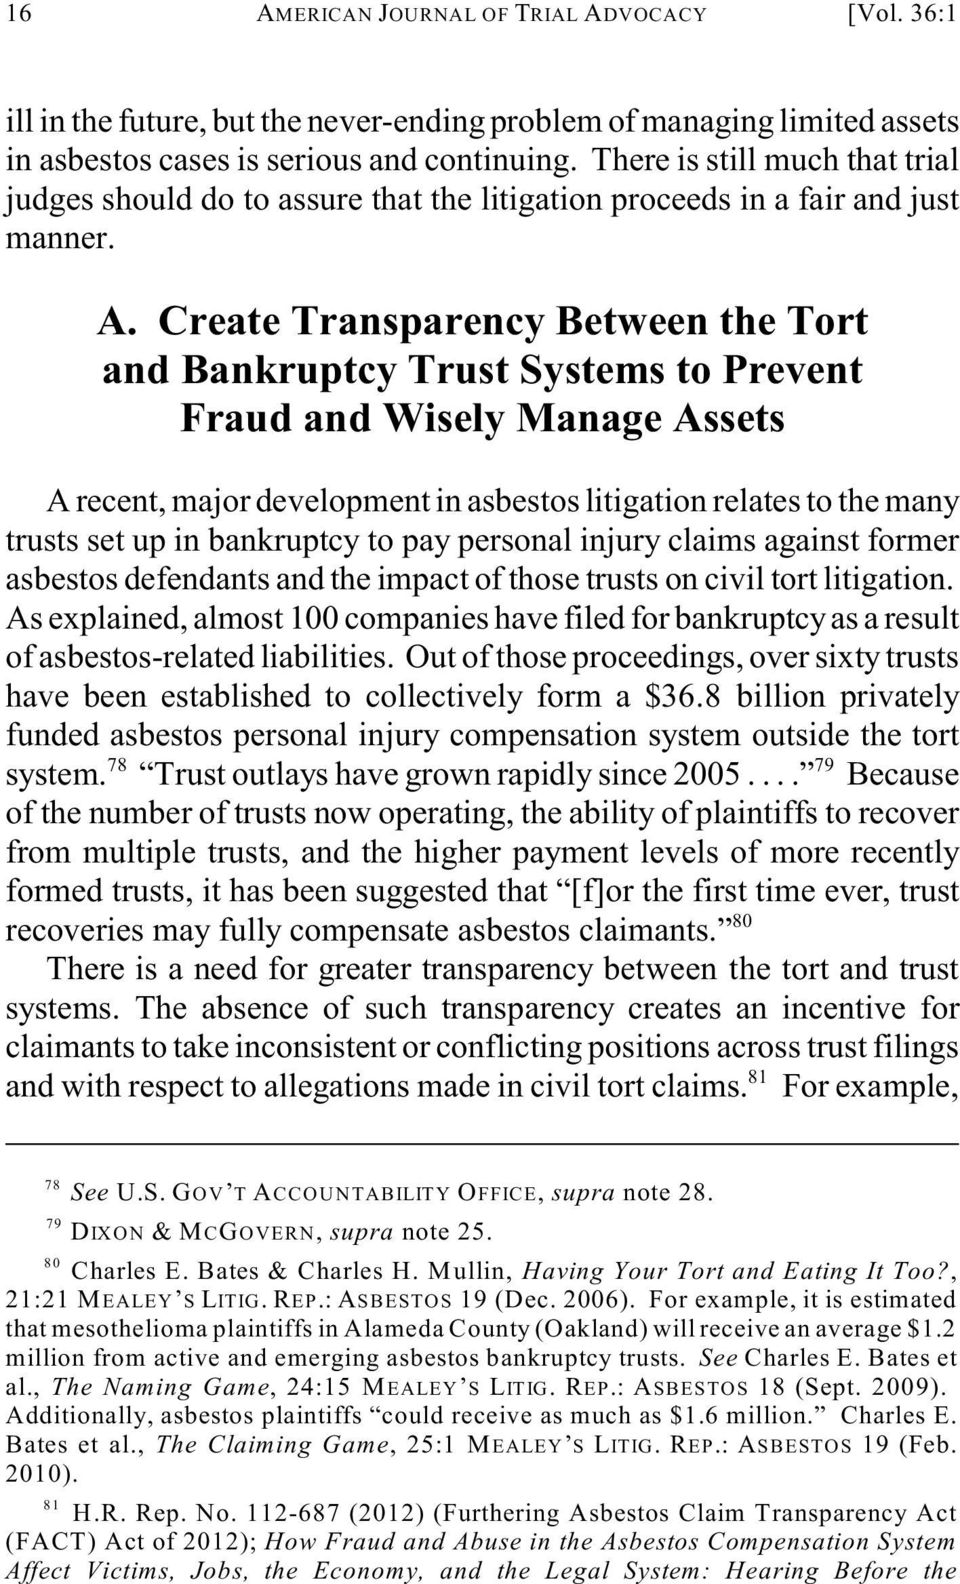 Create Transparency Between the Tort and Bankruptcy Trust Systems to Prevent Fraud and Wisely Manage Assets A recent, major development in asbestos litigation relates to the many trusts set up in